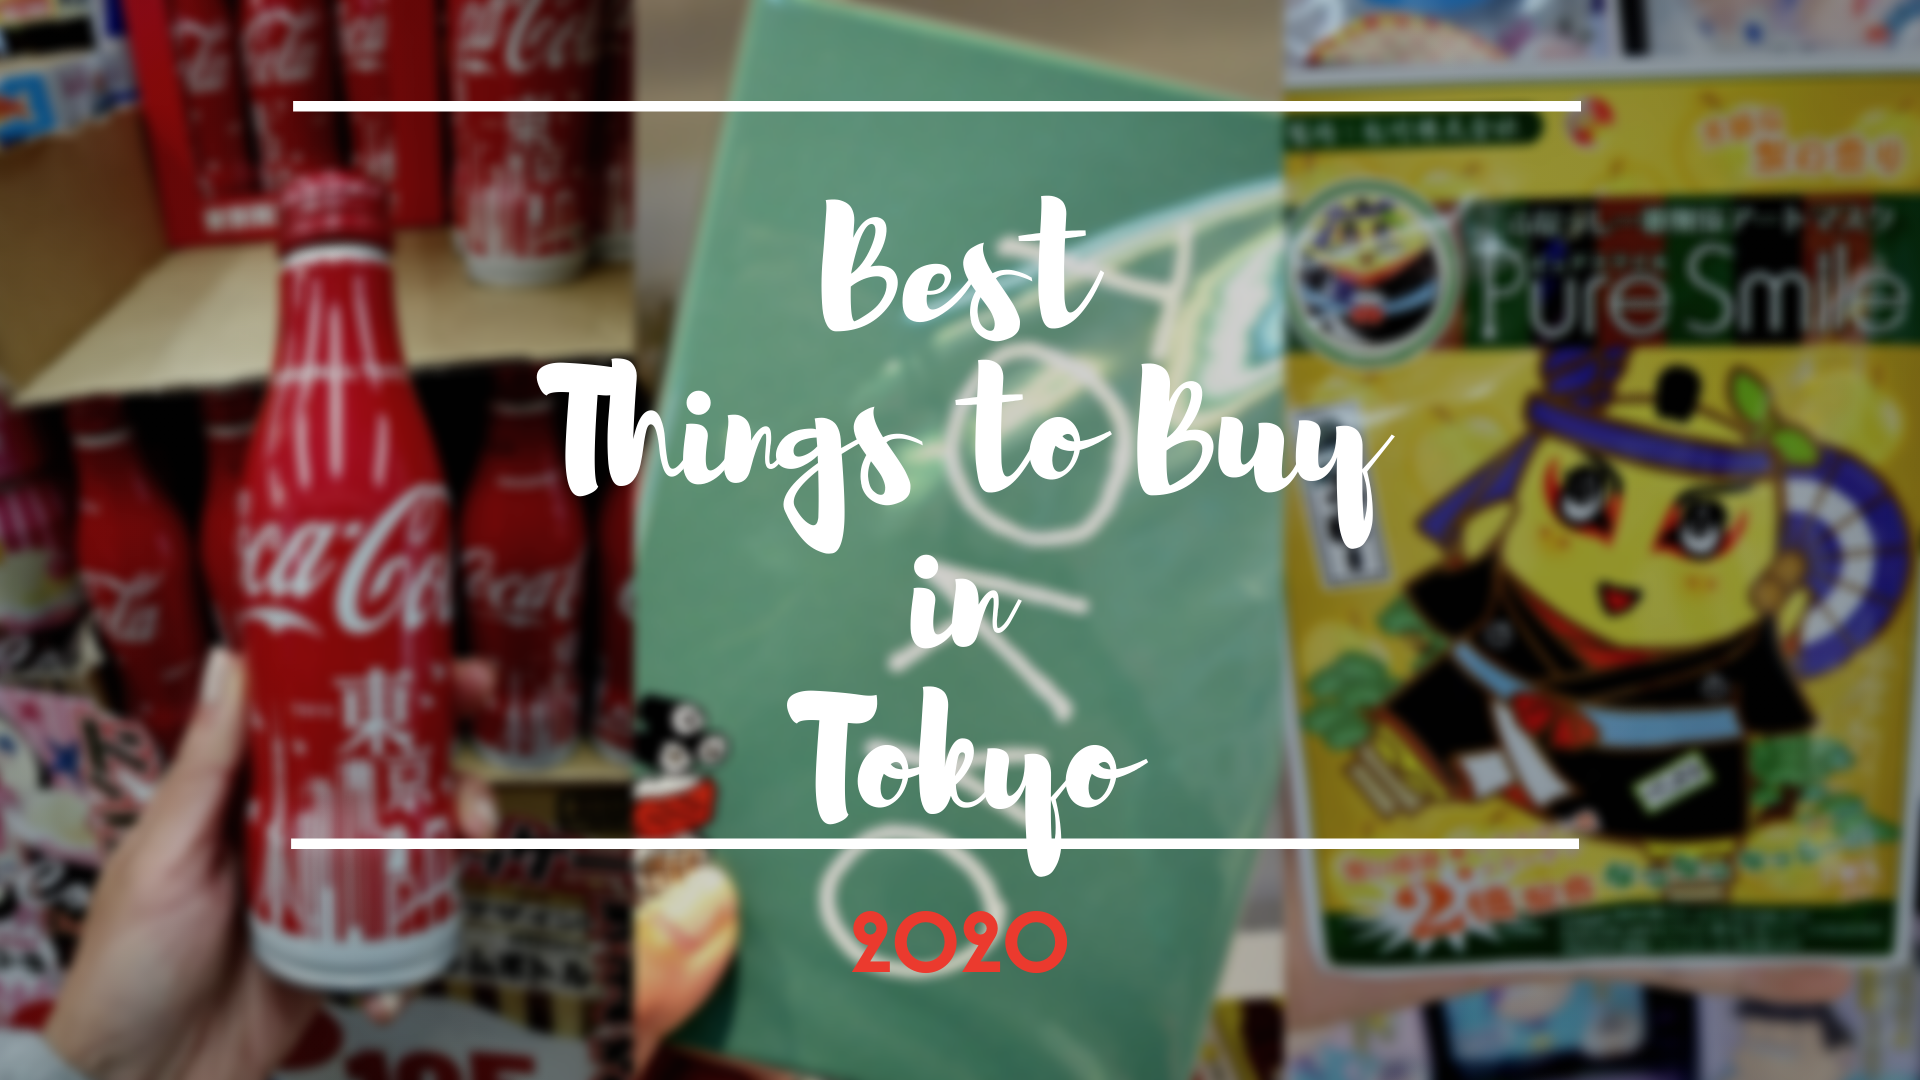 What to Buy in Tokyo 2020